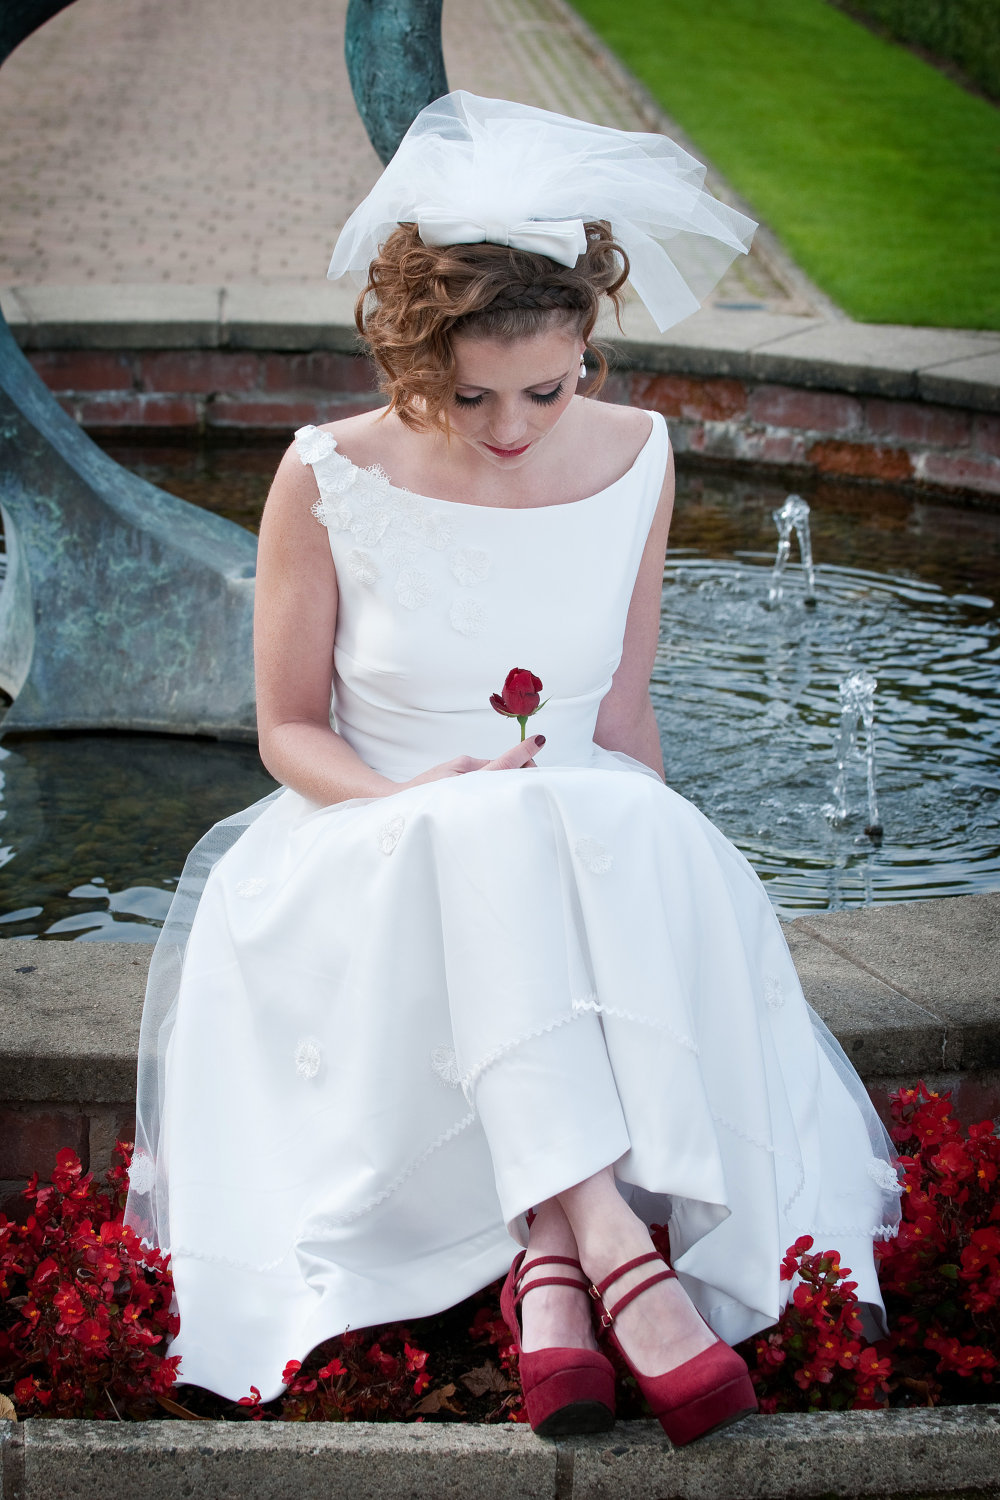 1950s-inspired-bridal-style-short-wedding-dress-with-red-shoes.full